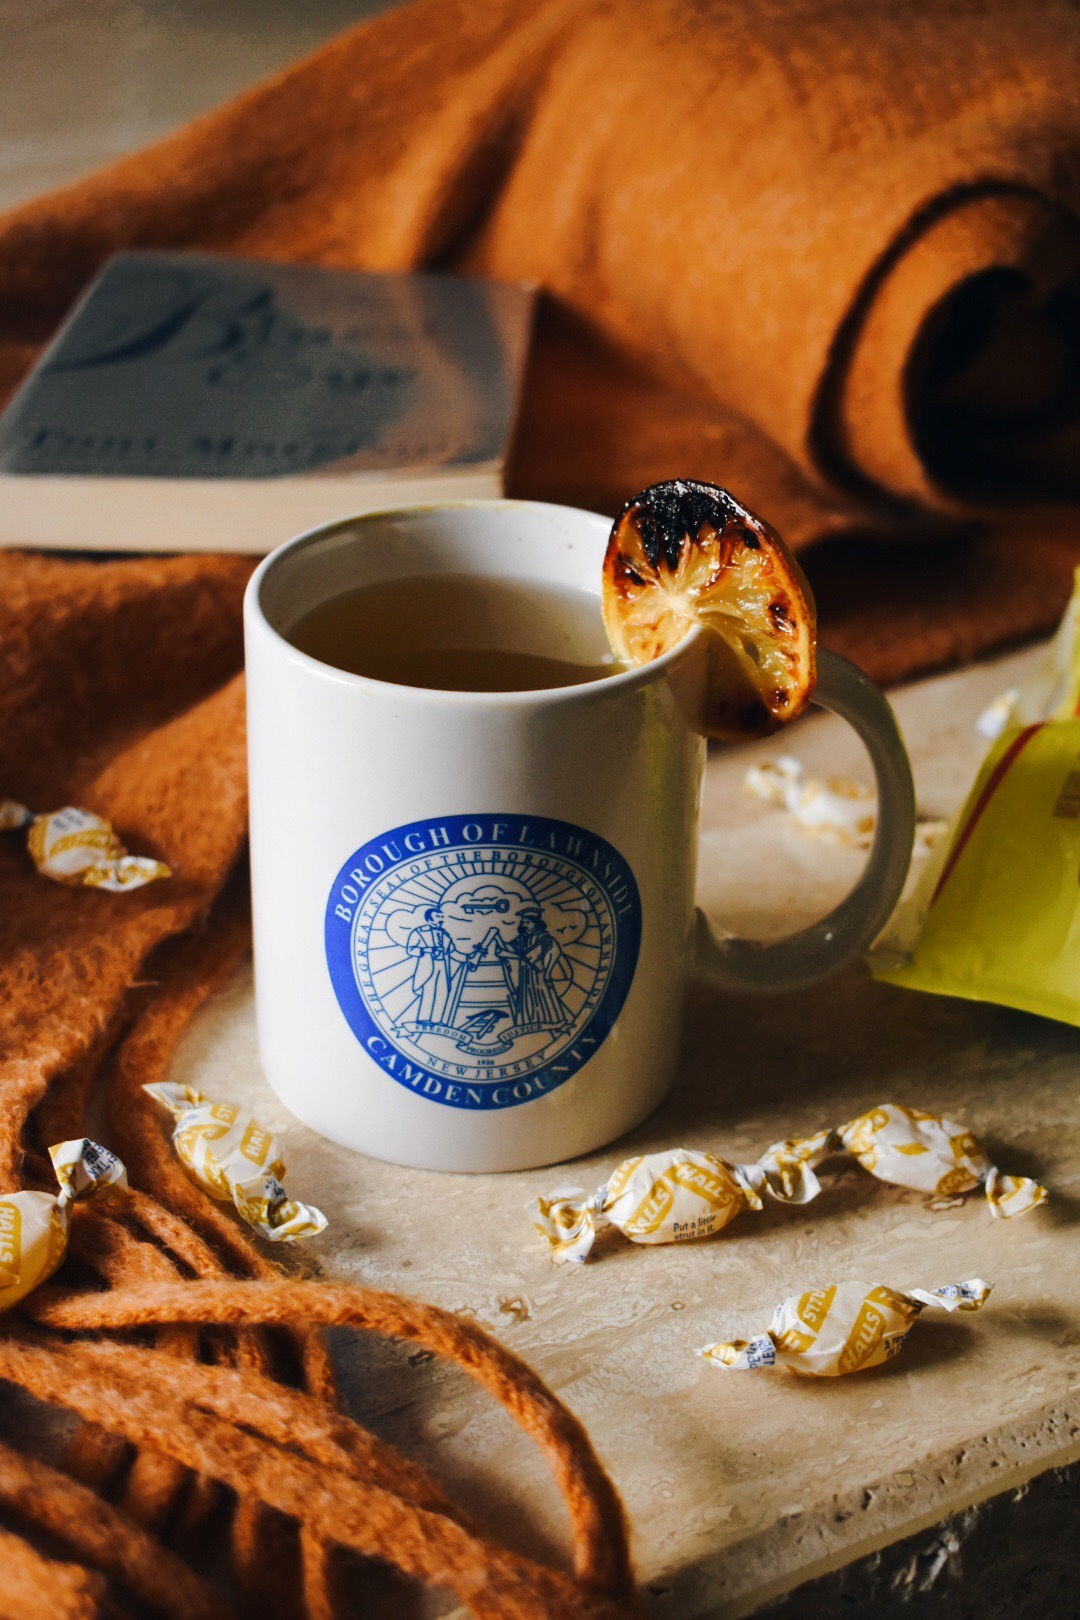 The classic Hot Toddy